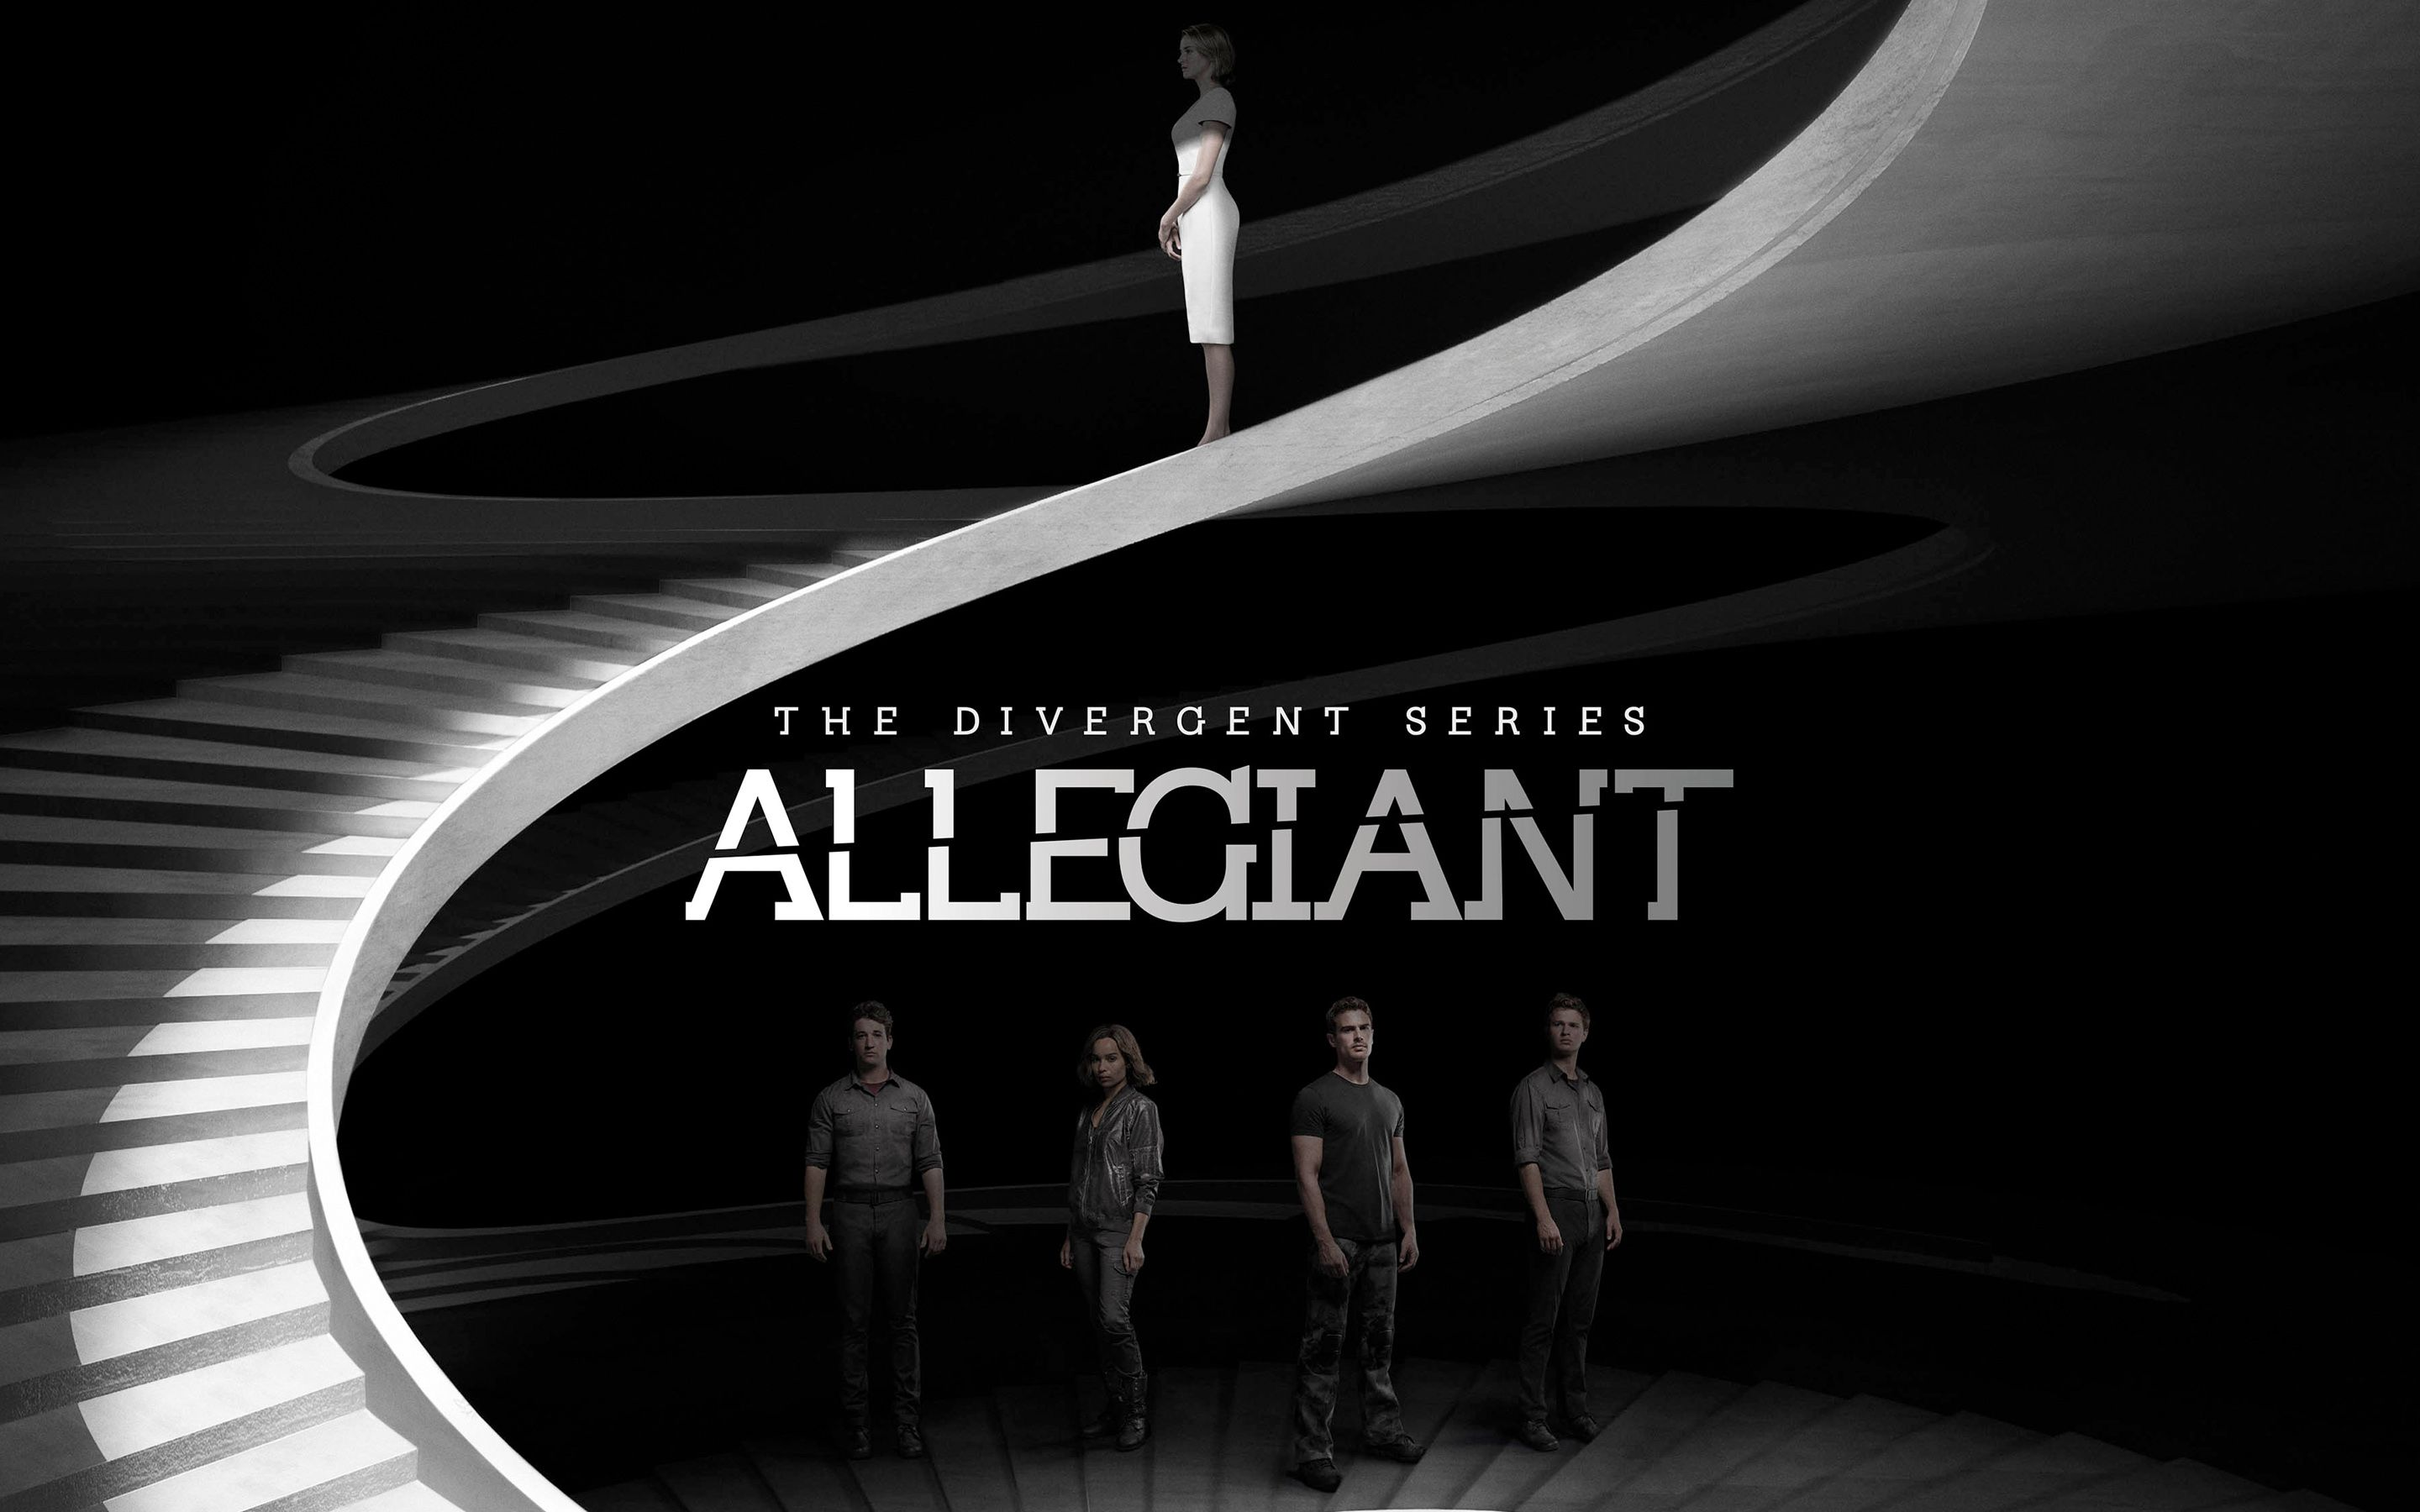 The Divergent Series Allegiant Movie Wallpapers   HD Wallpapers   ID #16764